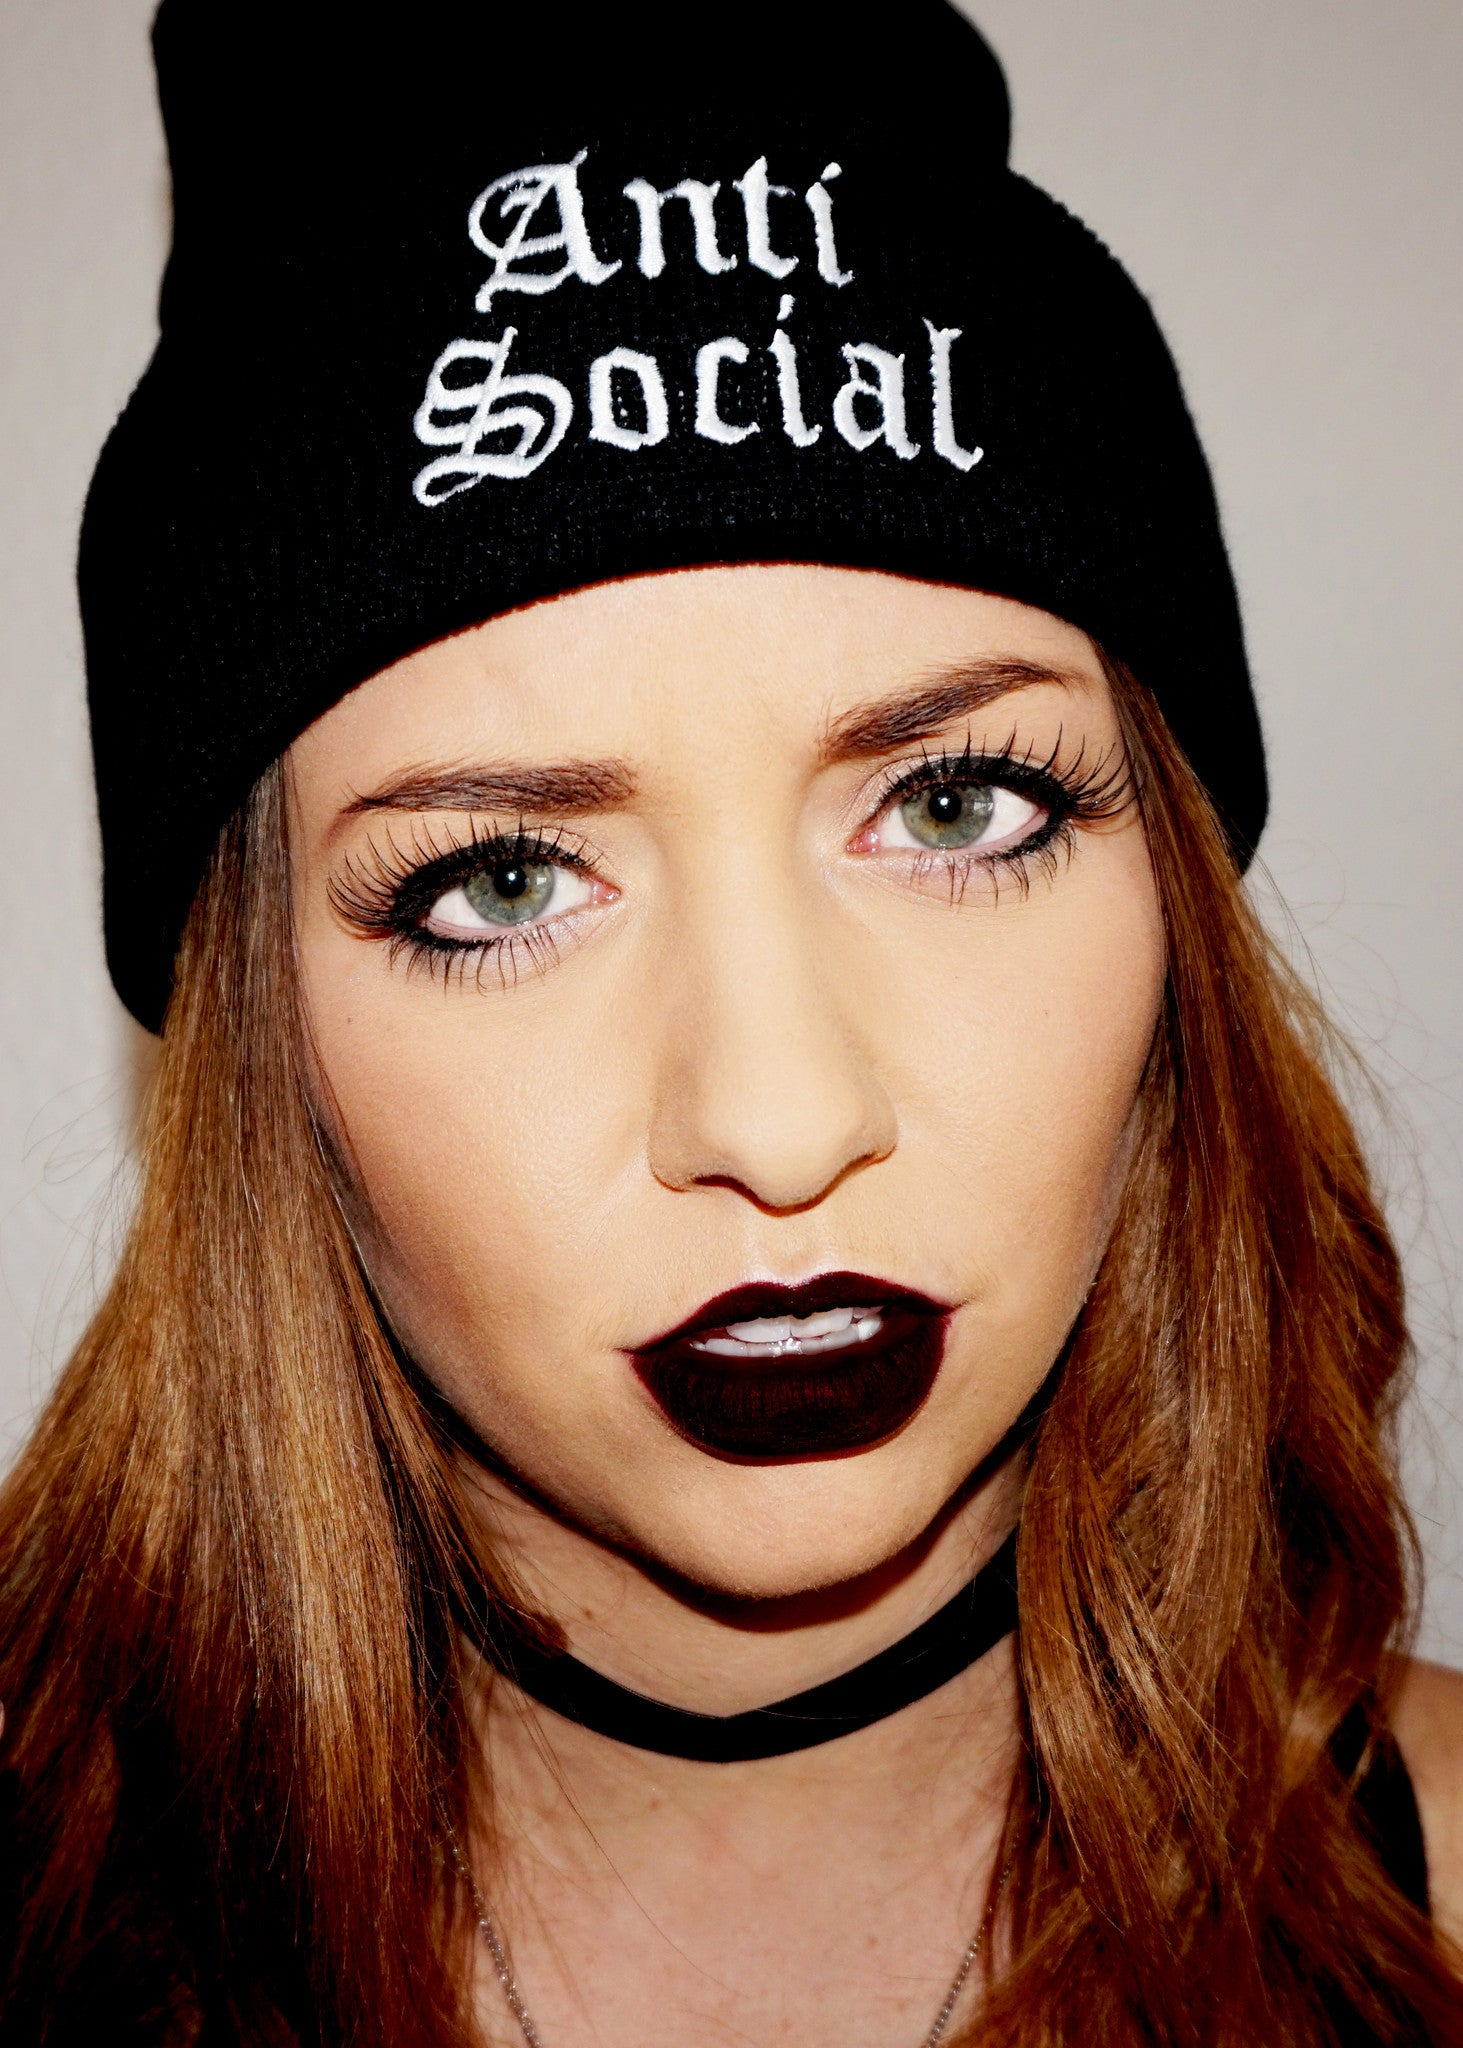 Anti Social Beanie (SOLD OUT)